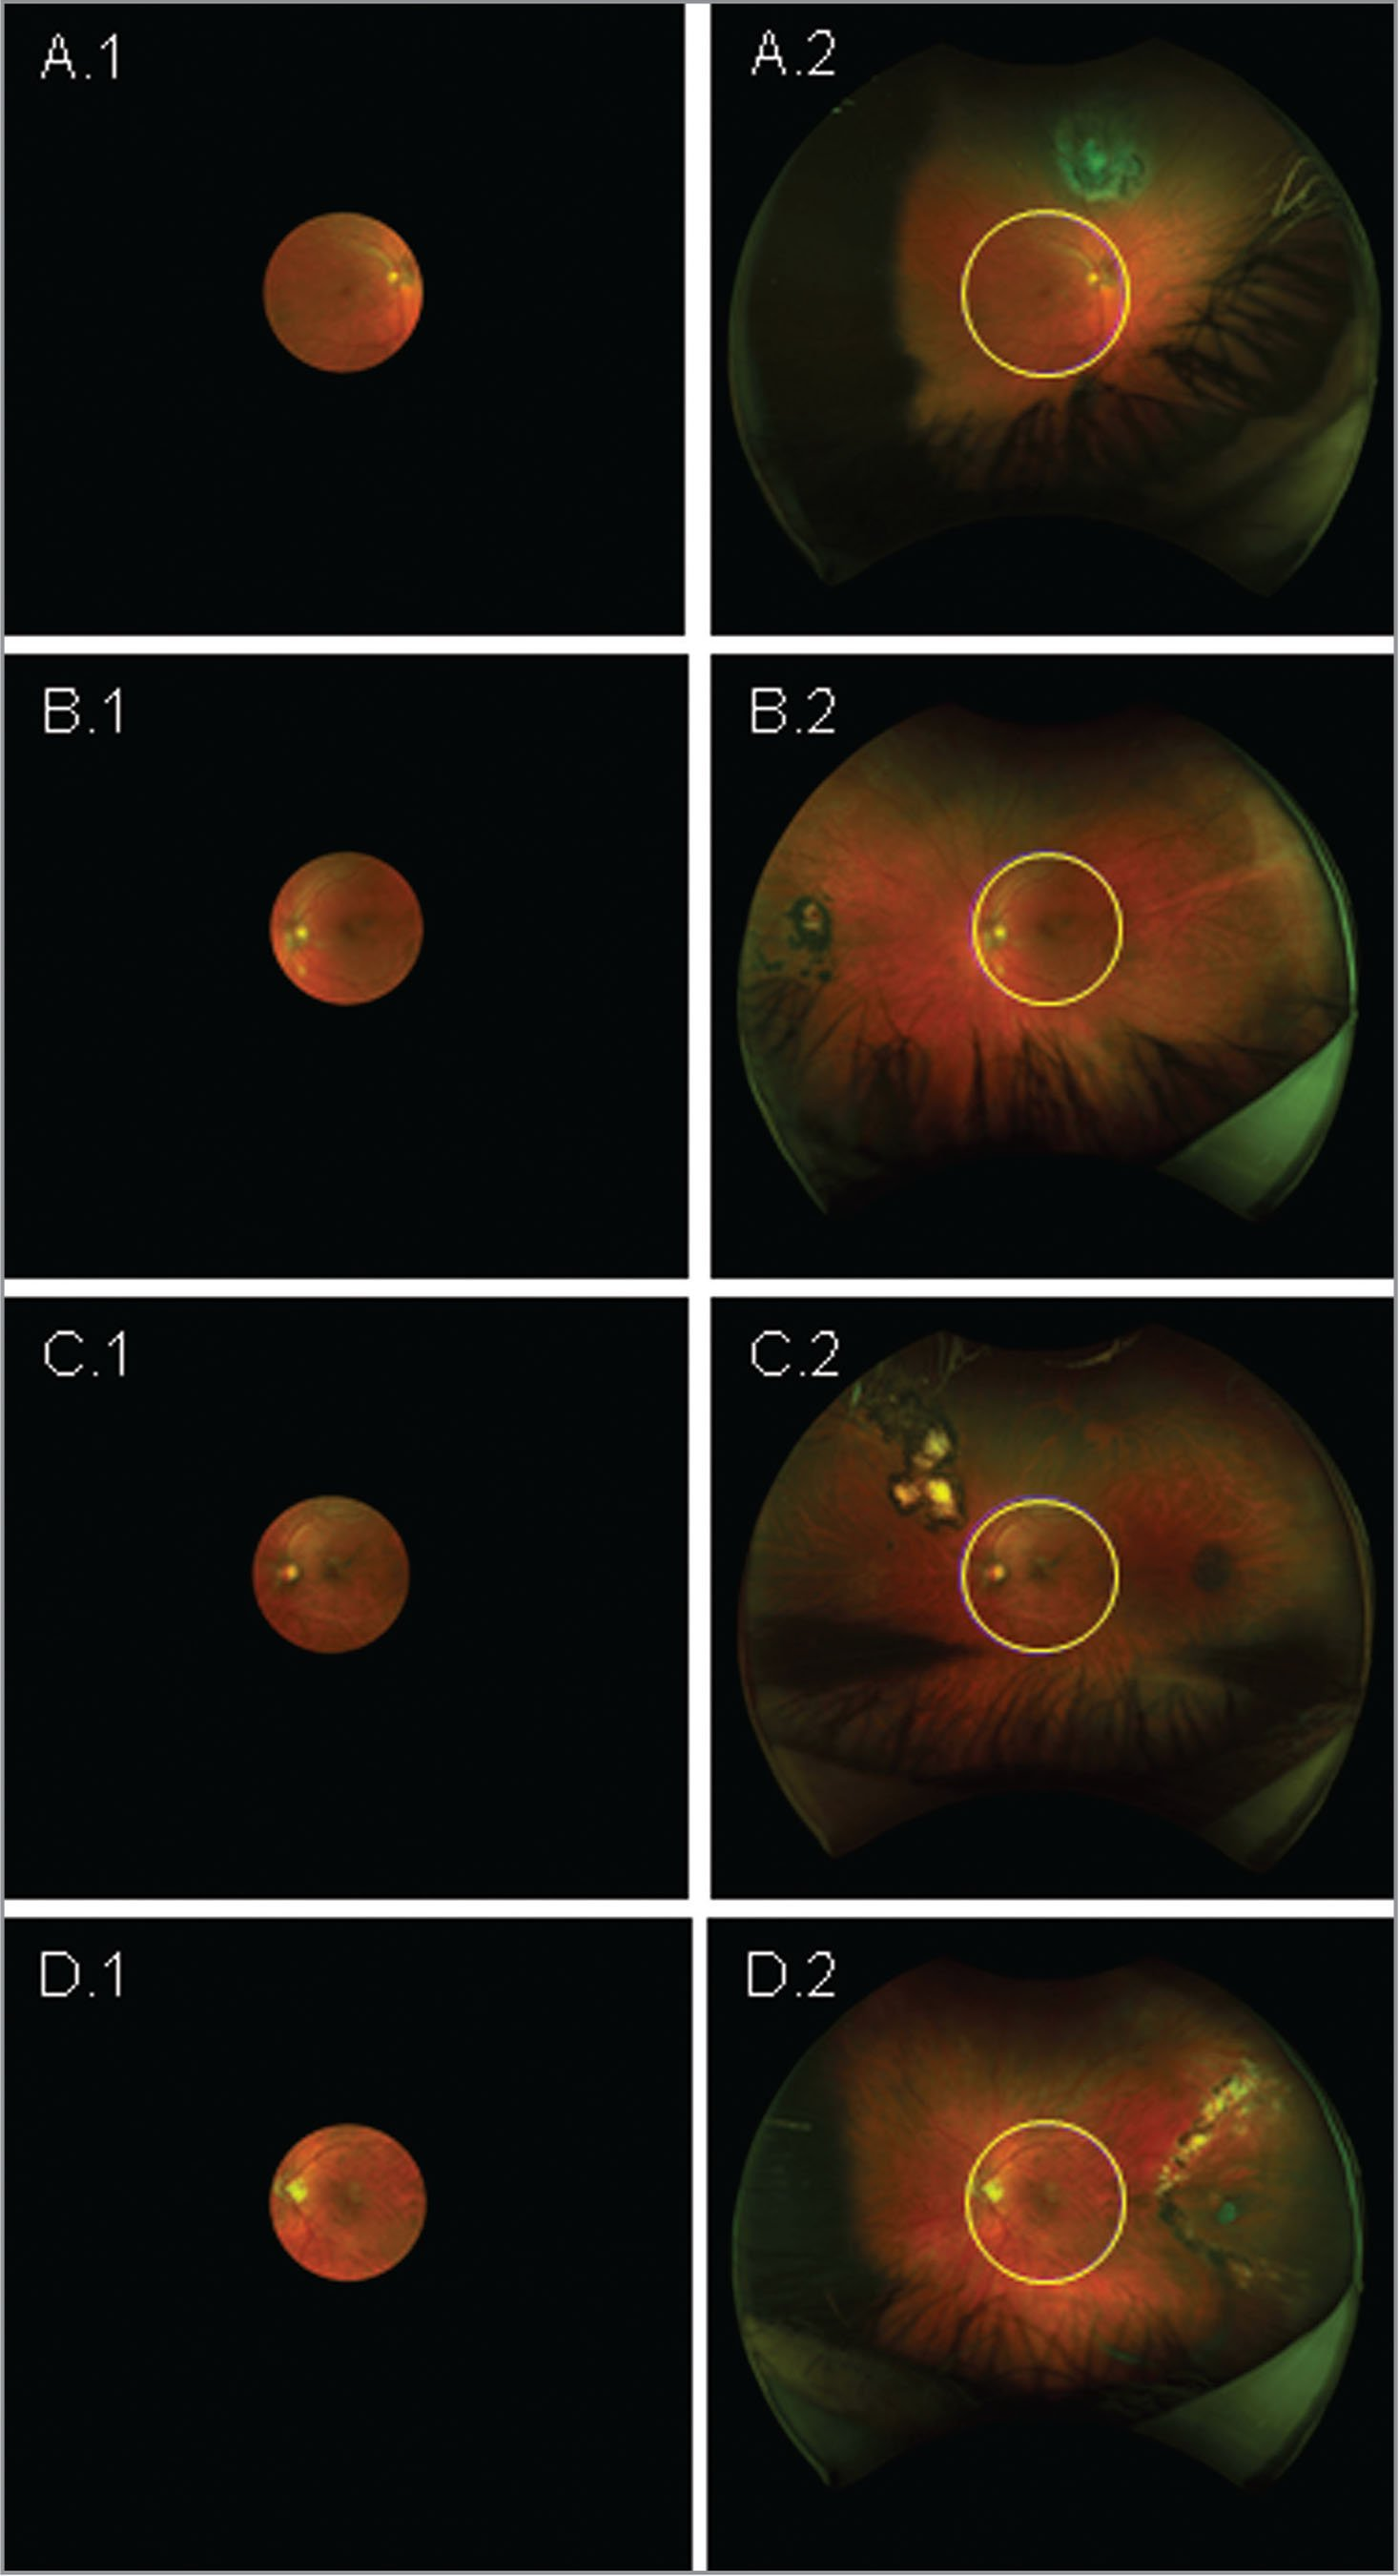 (A1, B1, C1, D1) Single-field fundus images of four subjects. (A2, B2, C2, D2) Corresponding ultra-widefield images with mask/grid outlines showing peripheral retinal pathologies that were not visible on the single-field fundus images ([A2] Choroidal nevus with drusen/possible melanoma; [B2] Chorioretinal scar; [C2] Chorioretinal scars; [D2] Horseshoe tear and laser scars).